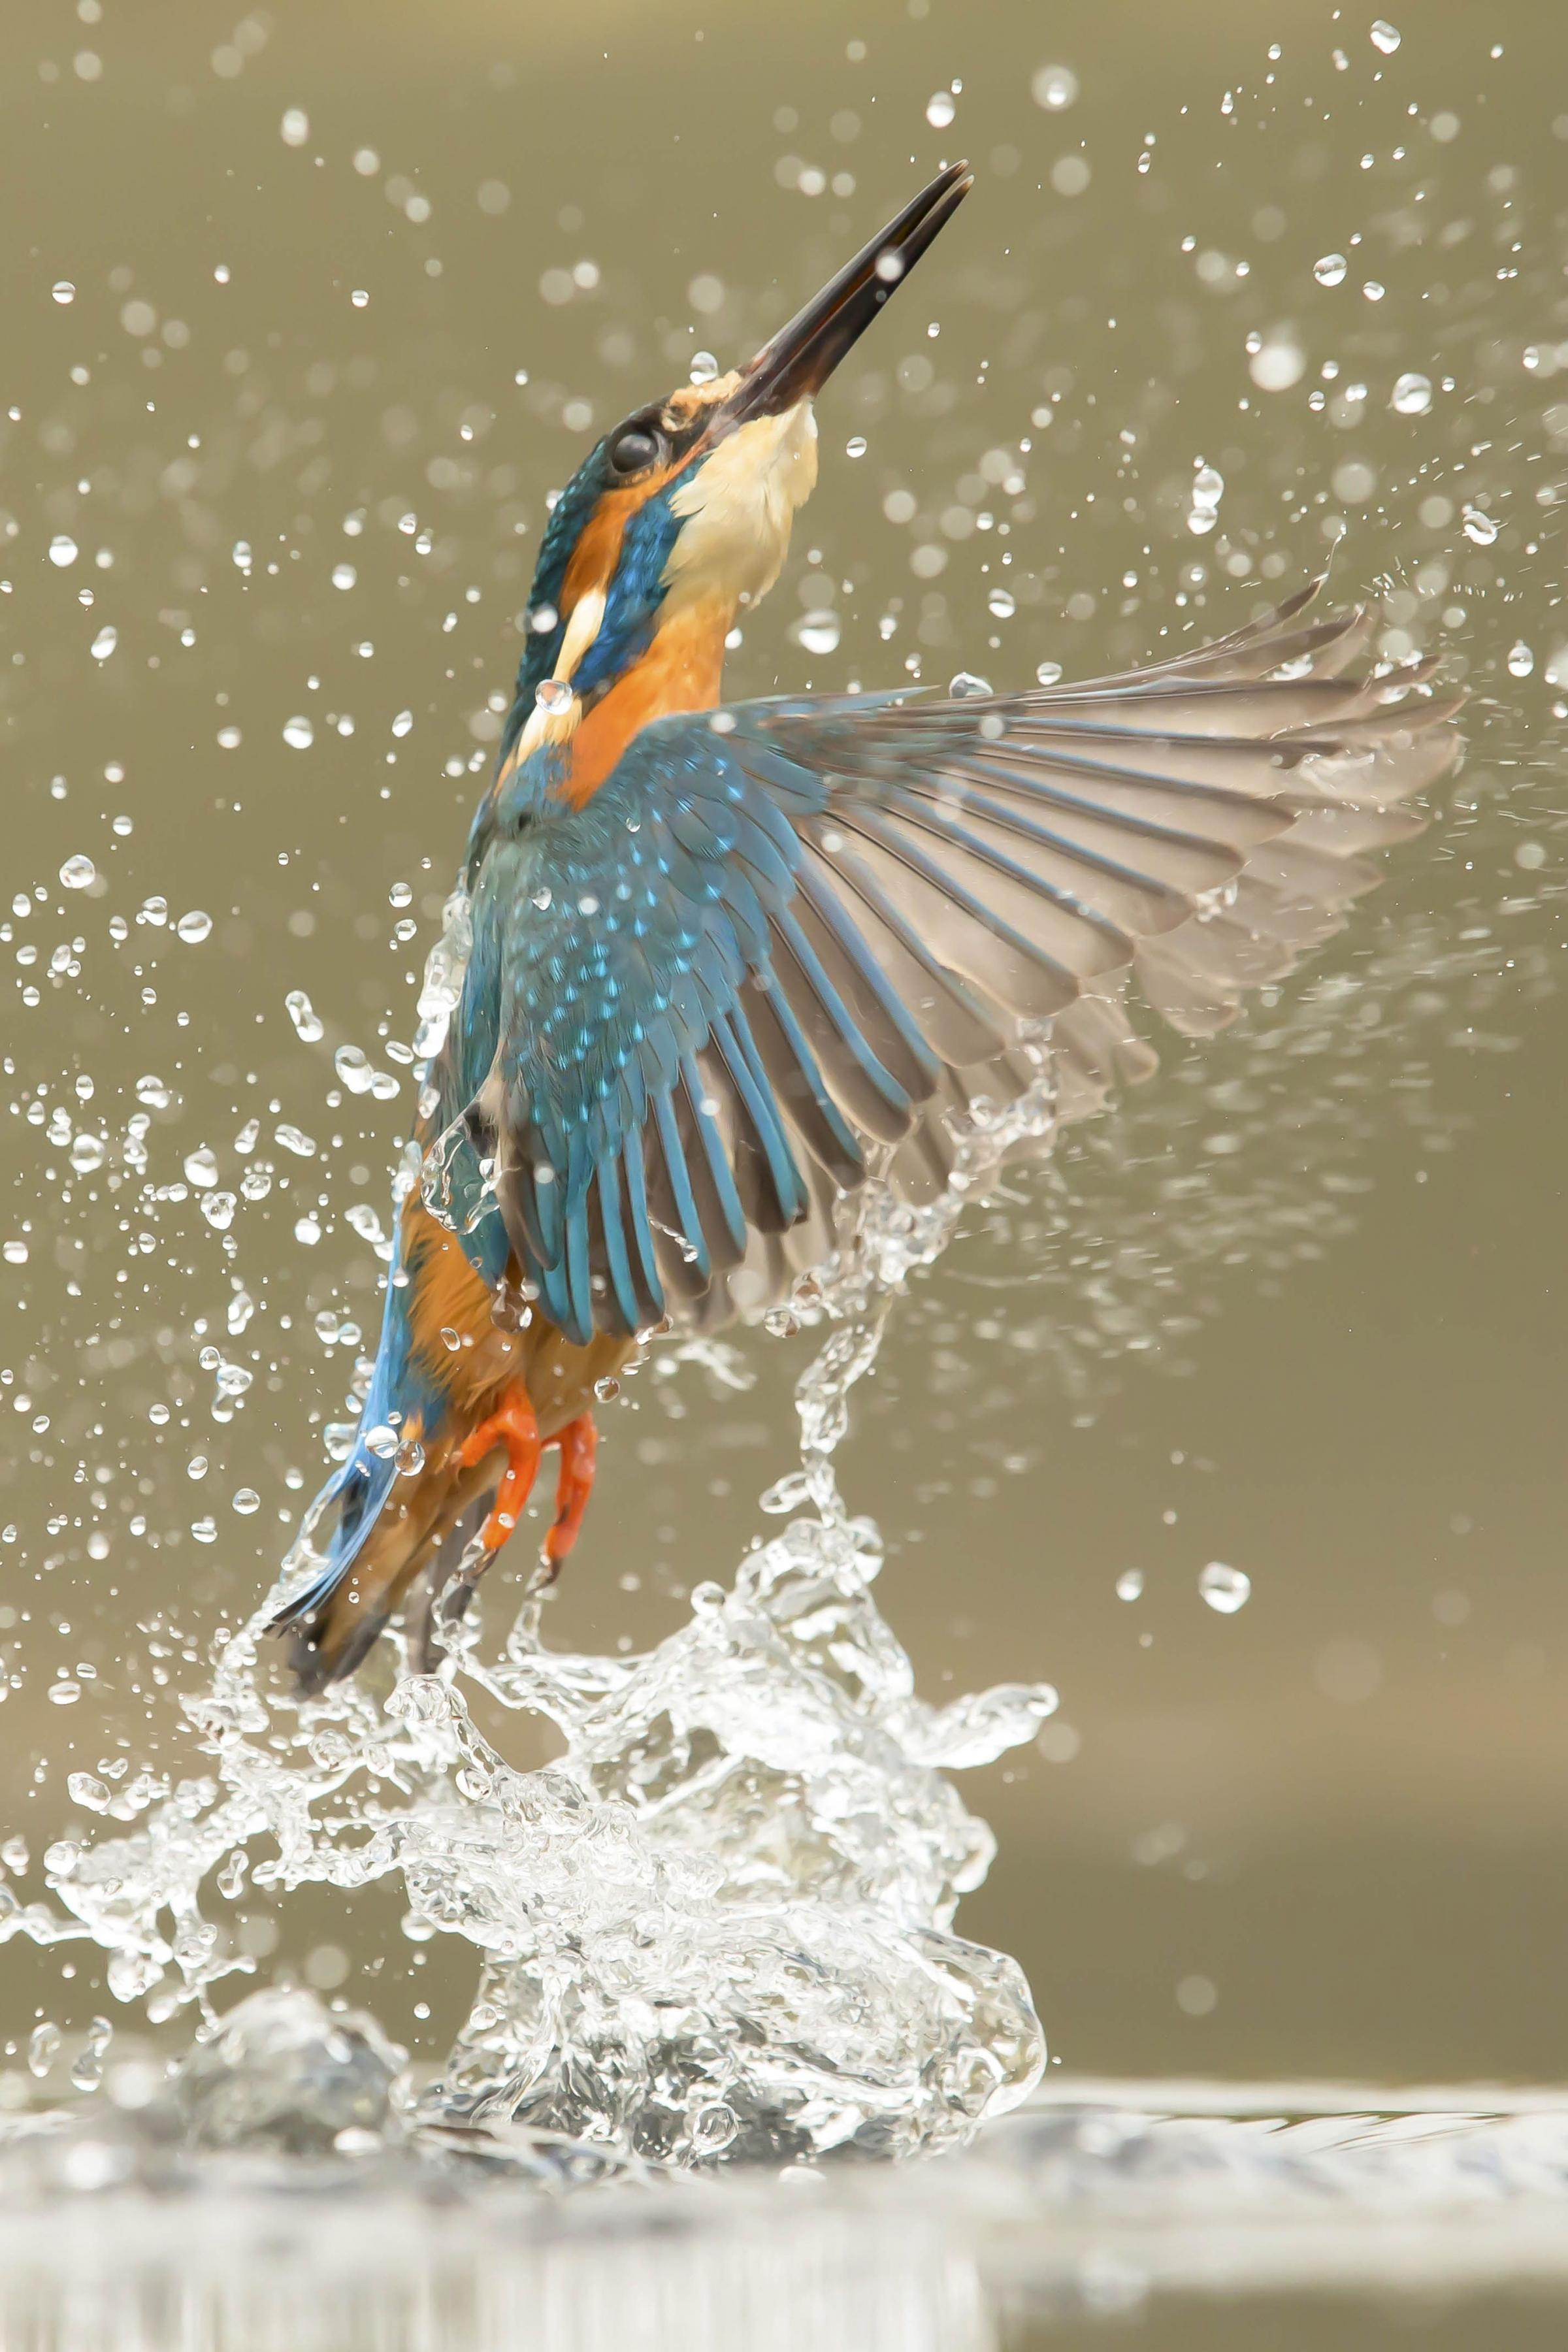 Last year's winning entry, Kingfisher Diving by Tom Way.